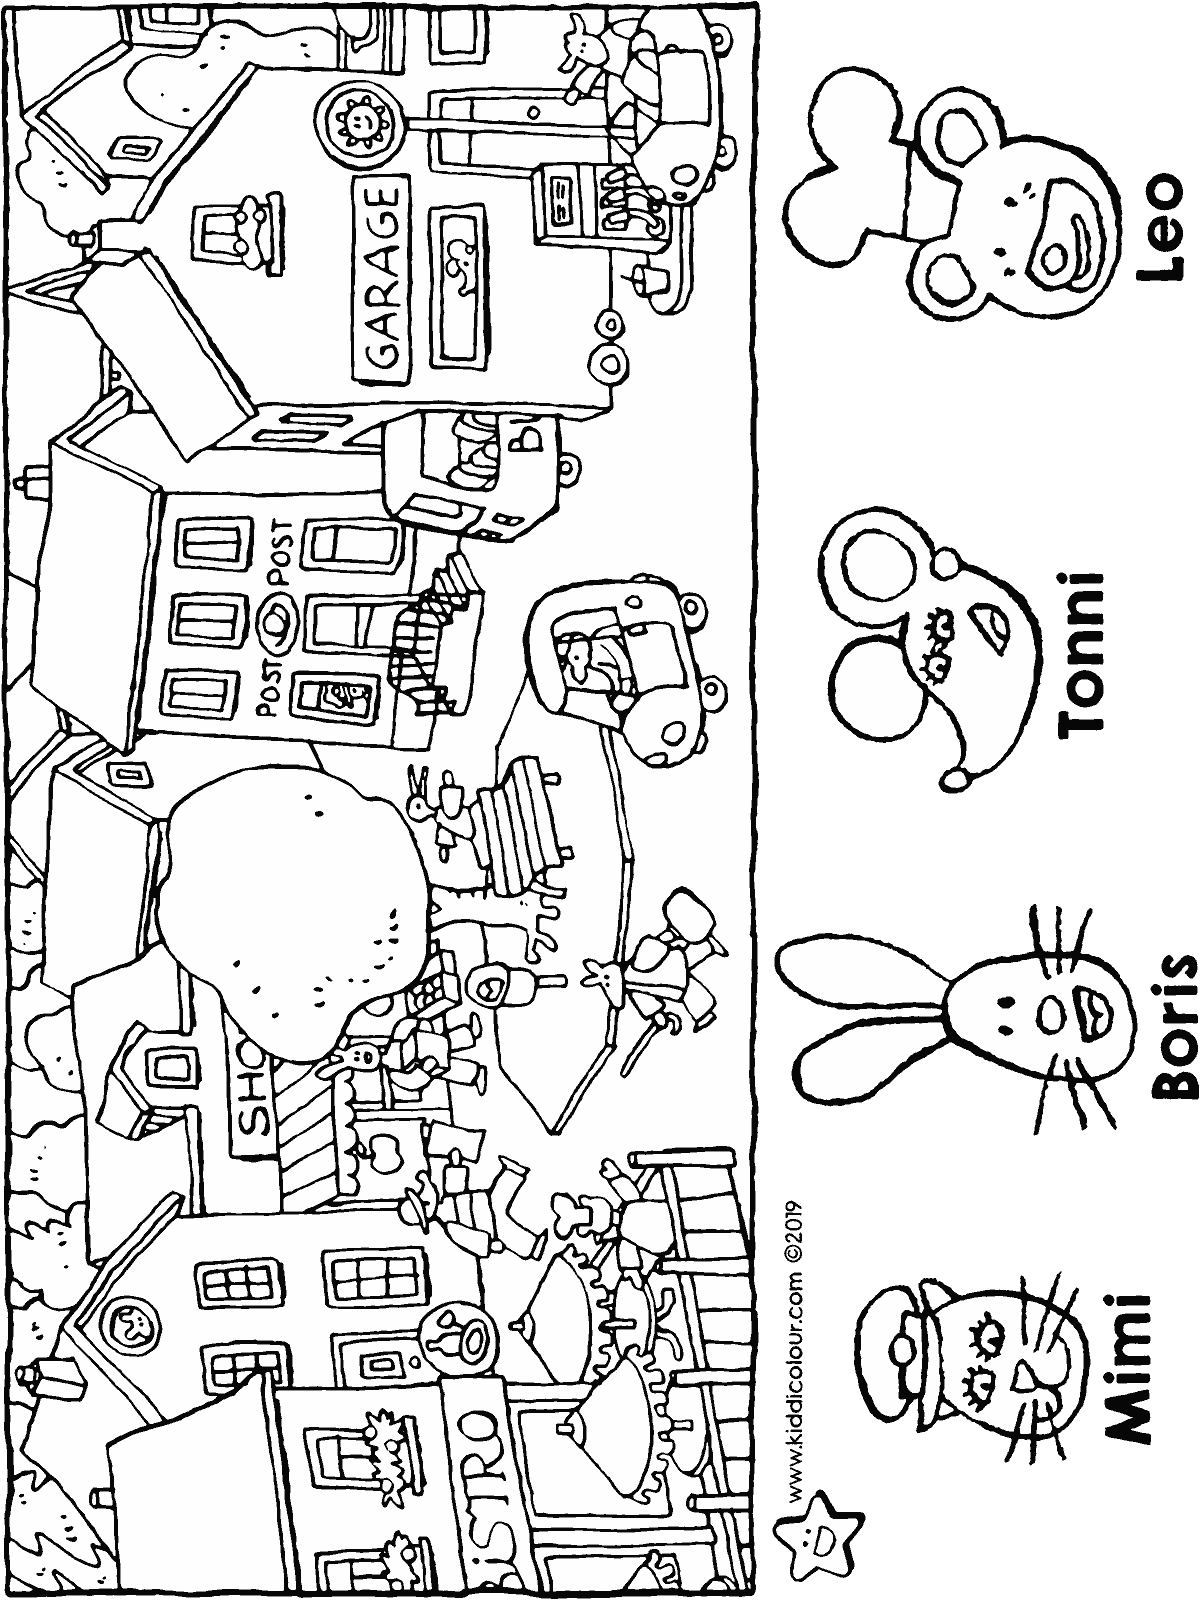 who lives where on the village square • search picture colouring page drawing picture 01H